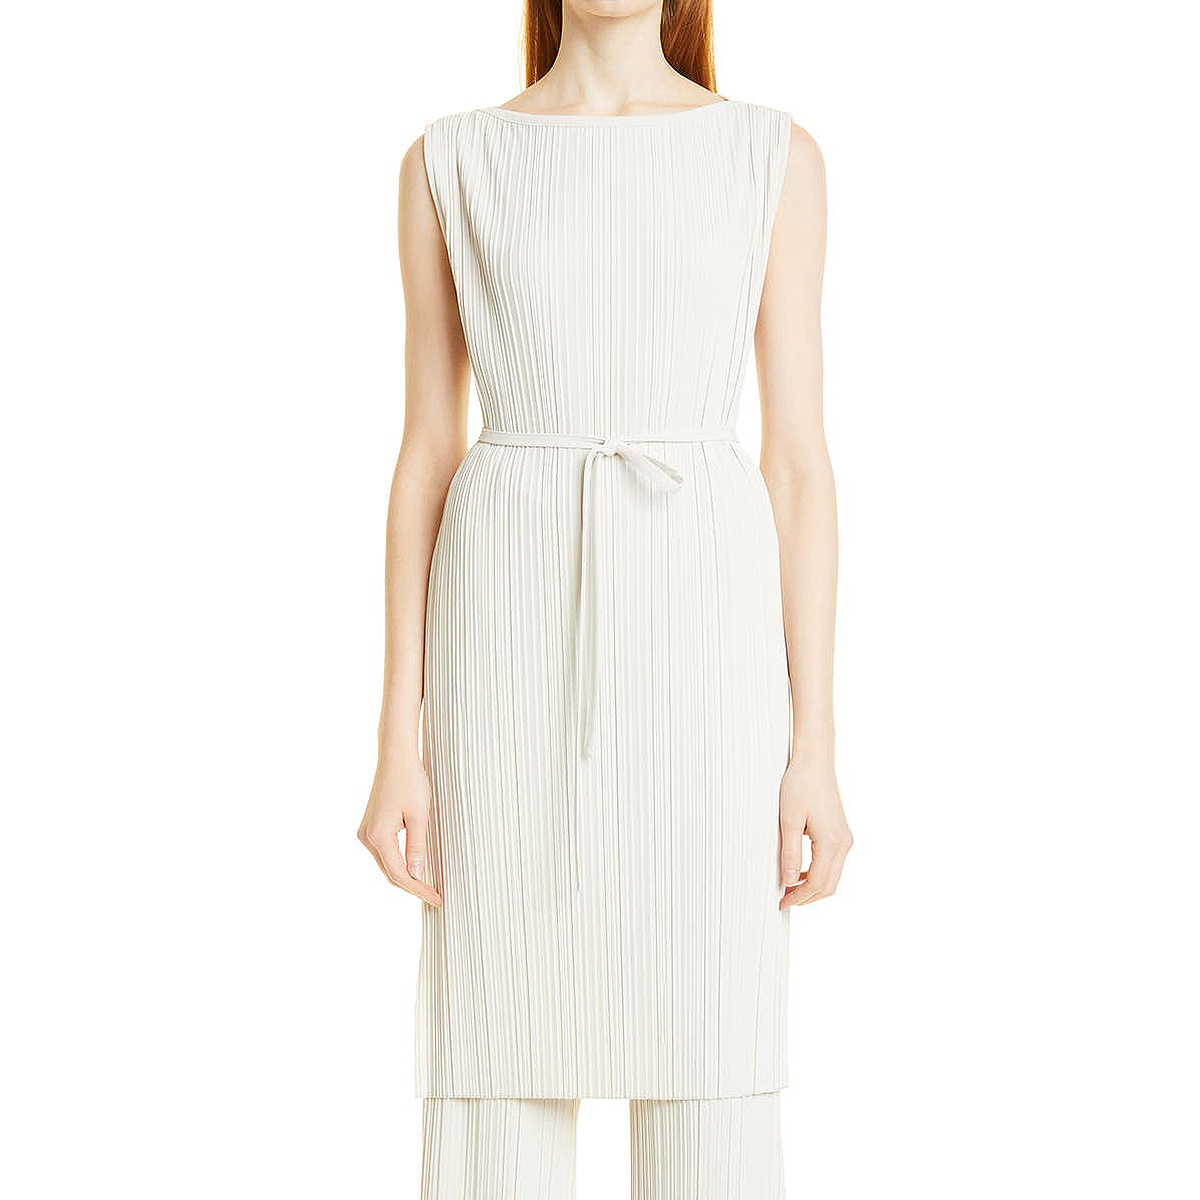 nordstrom-ribbed-clothing-tunic